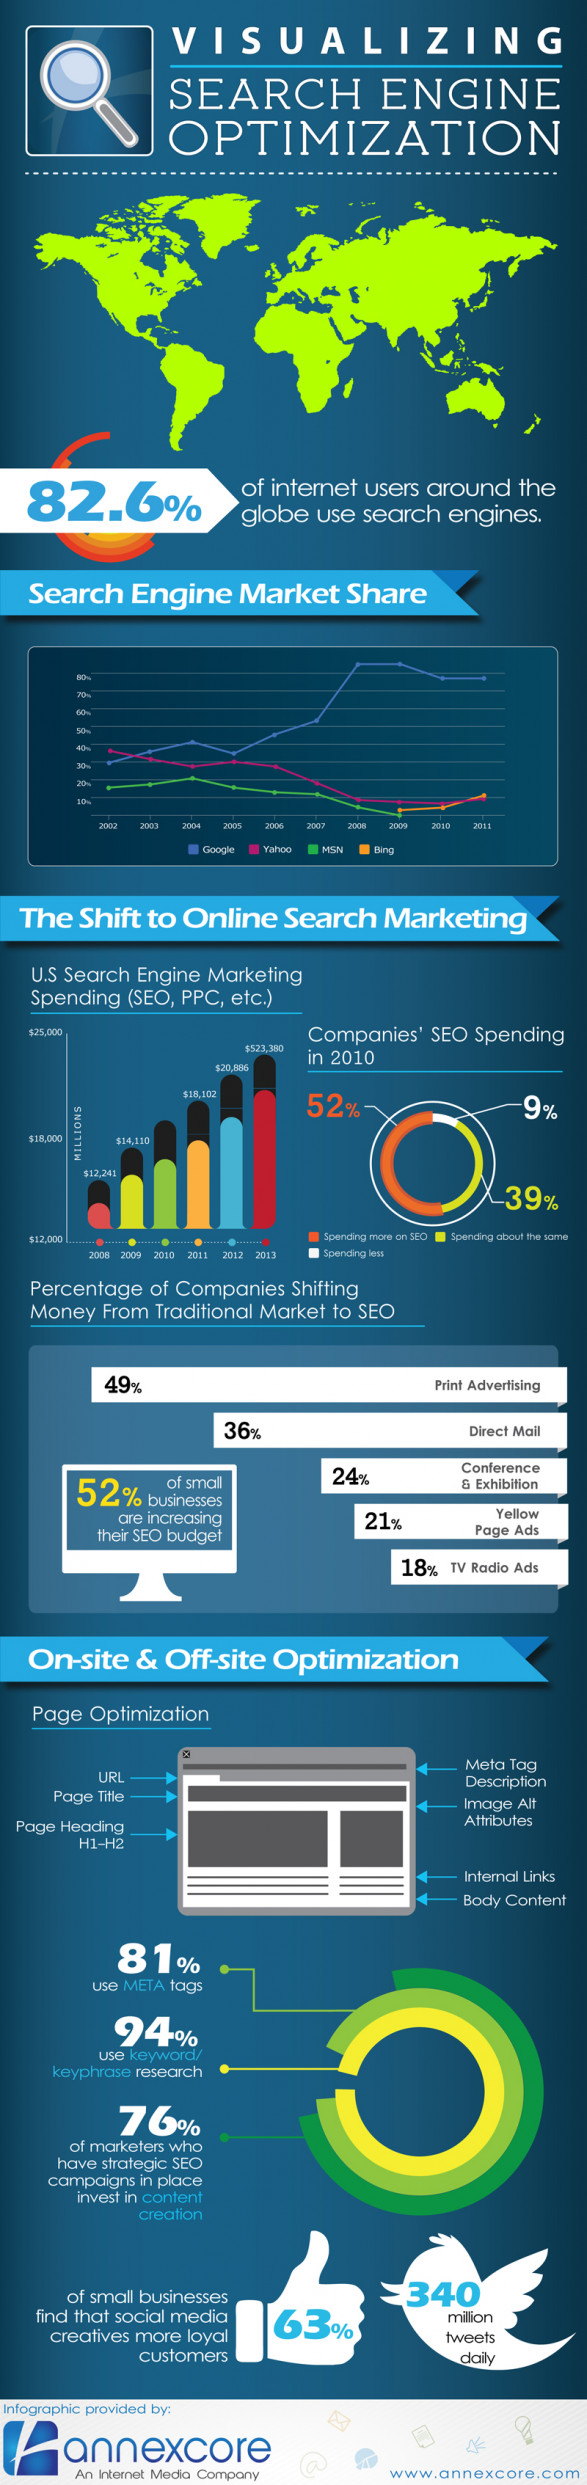 Visualizing SEO